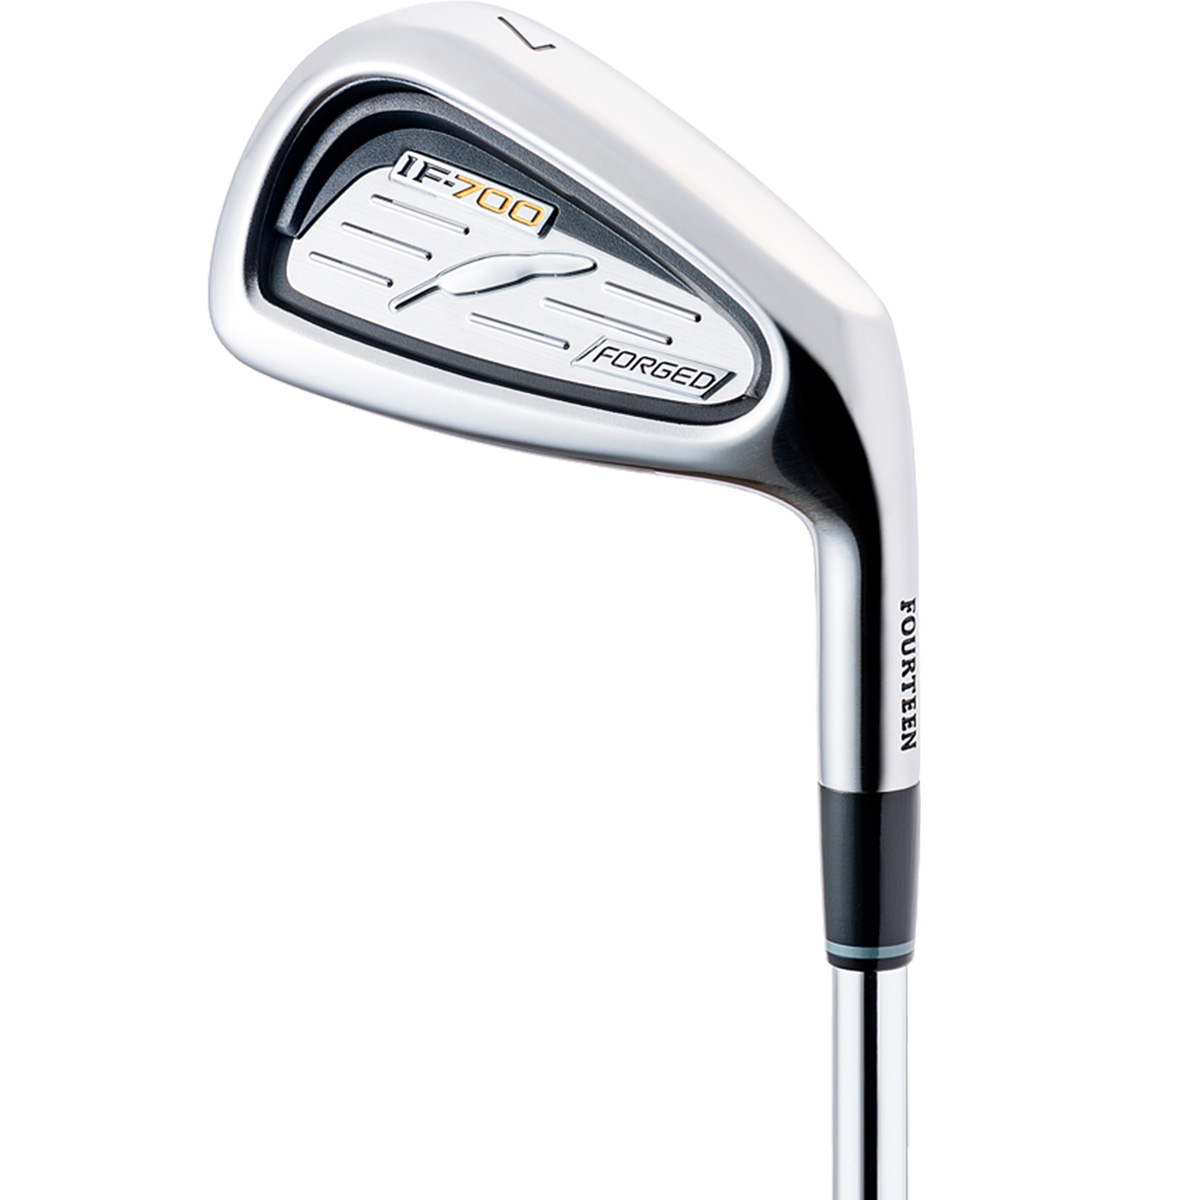 IF-700 FORGED アイアン(単品) N.S.PRO MODUS3 SYSTEM3 TOUR 125納期:受注後約5週間